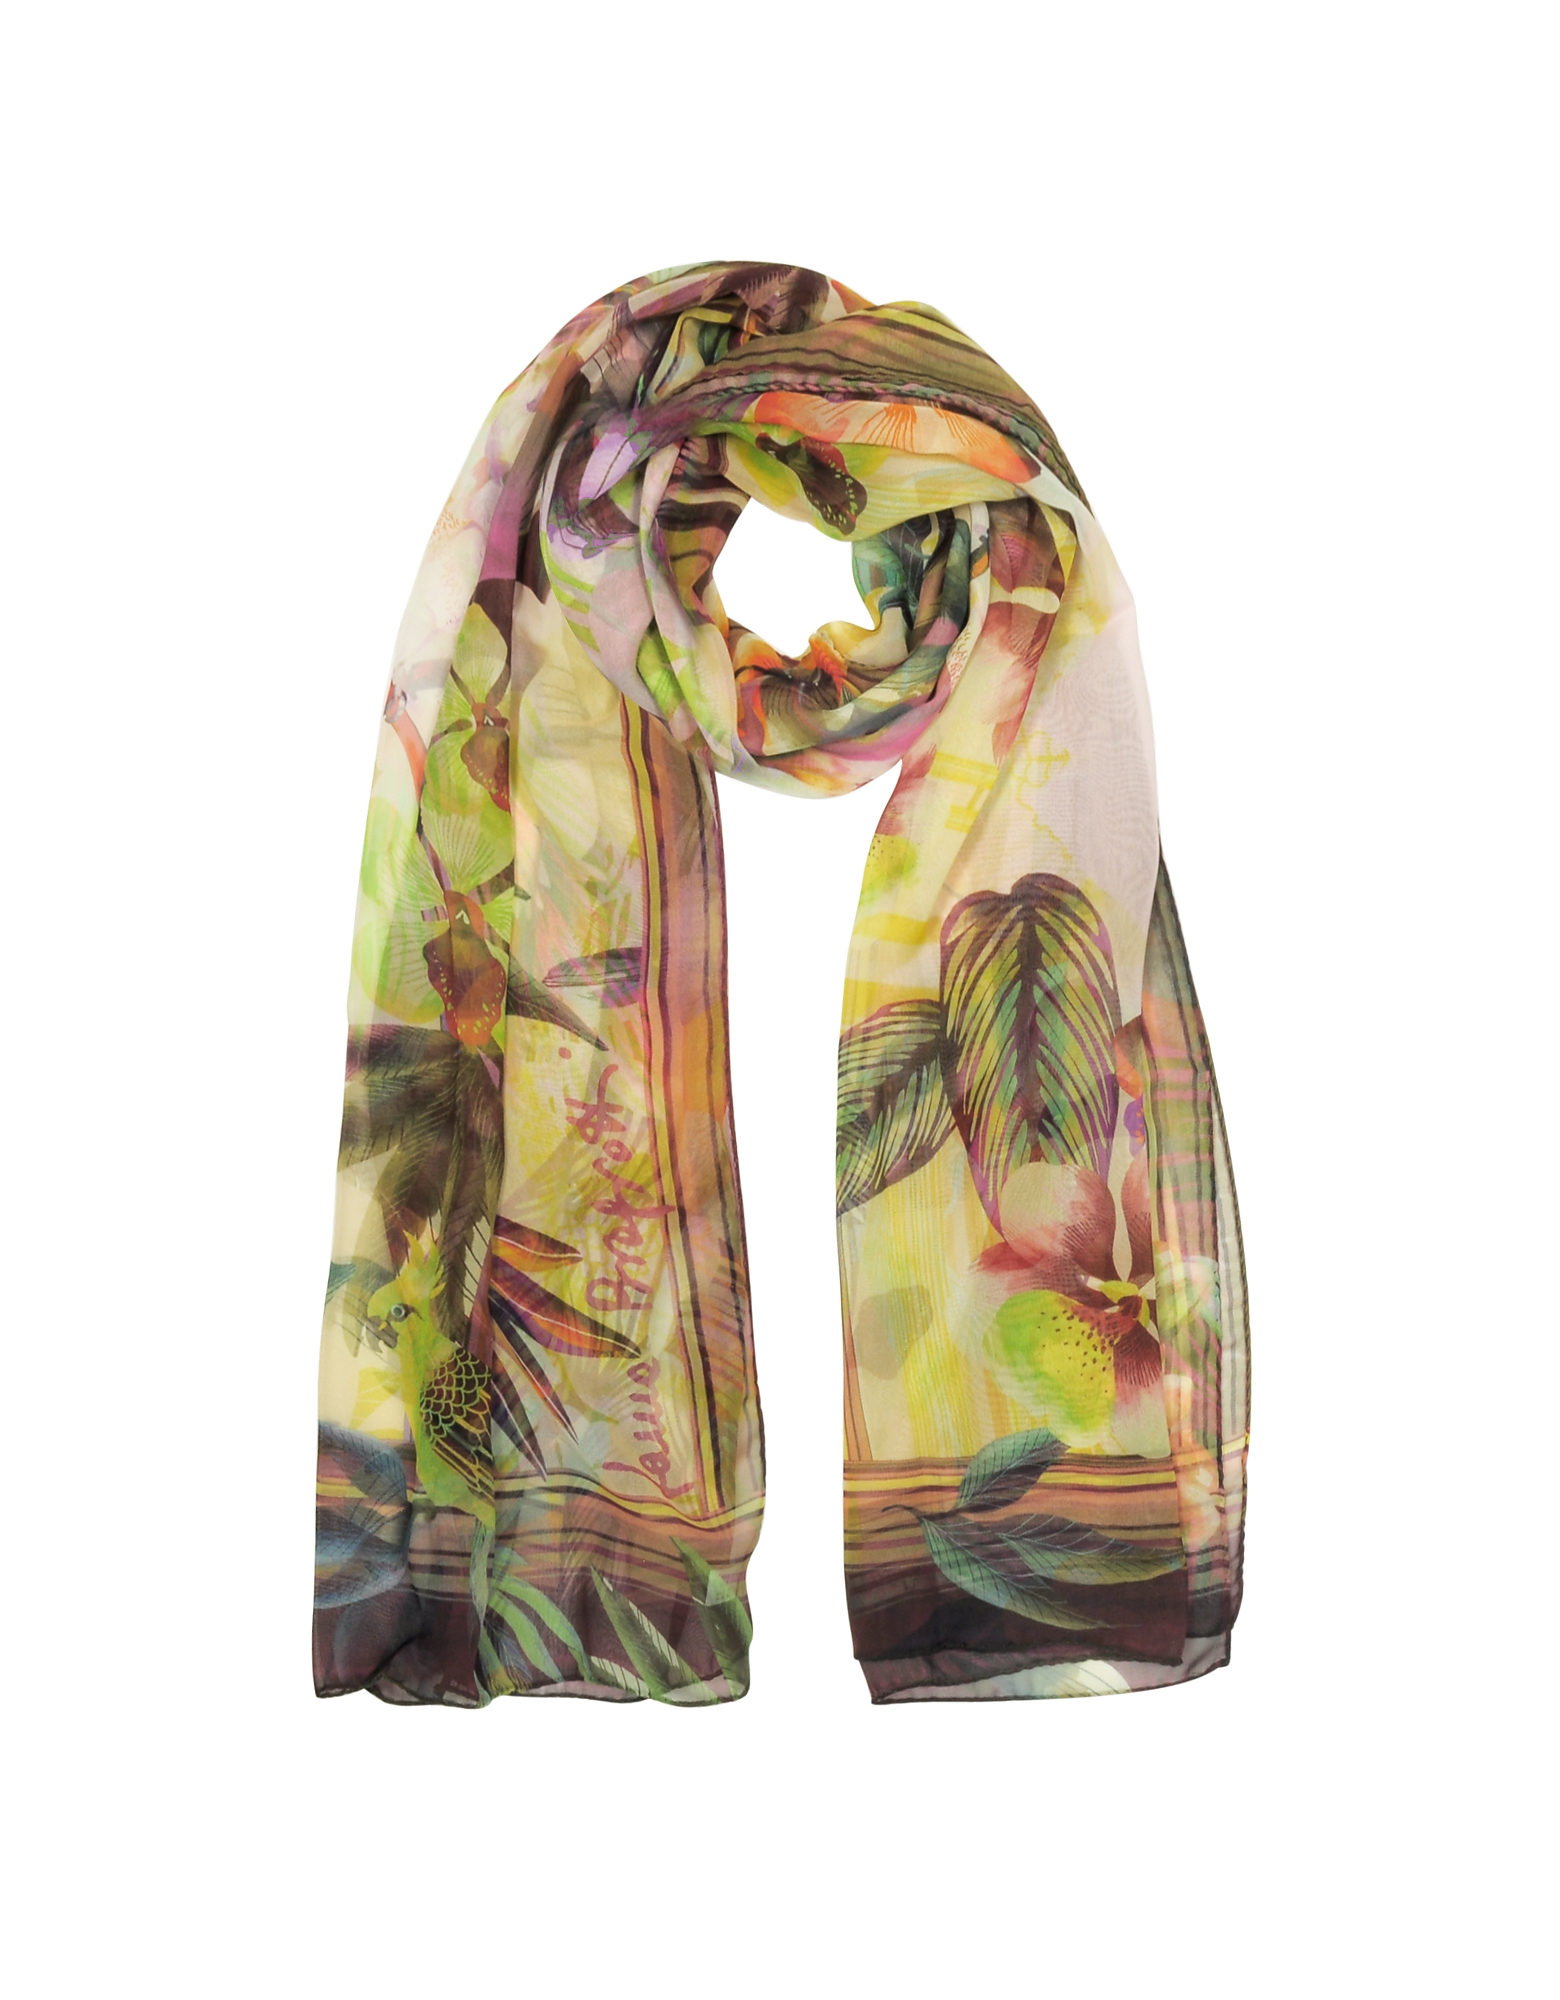 Image of Laura Biagiotti Designer Scarves, Burgundy Tropical Printed Chiffon Silk Stole